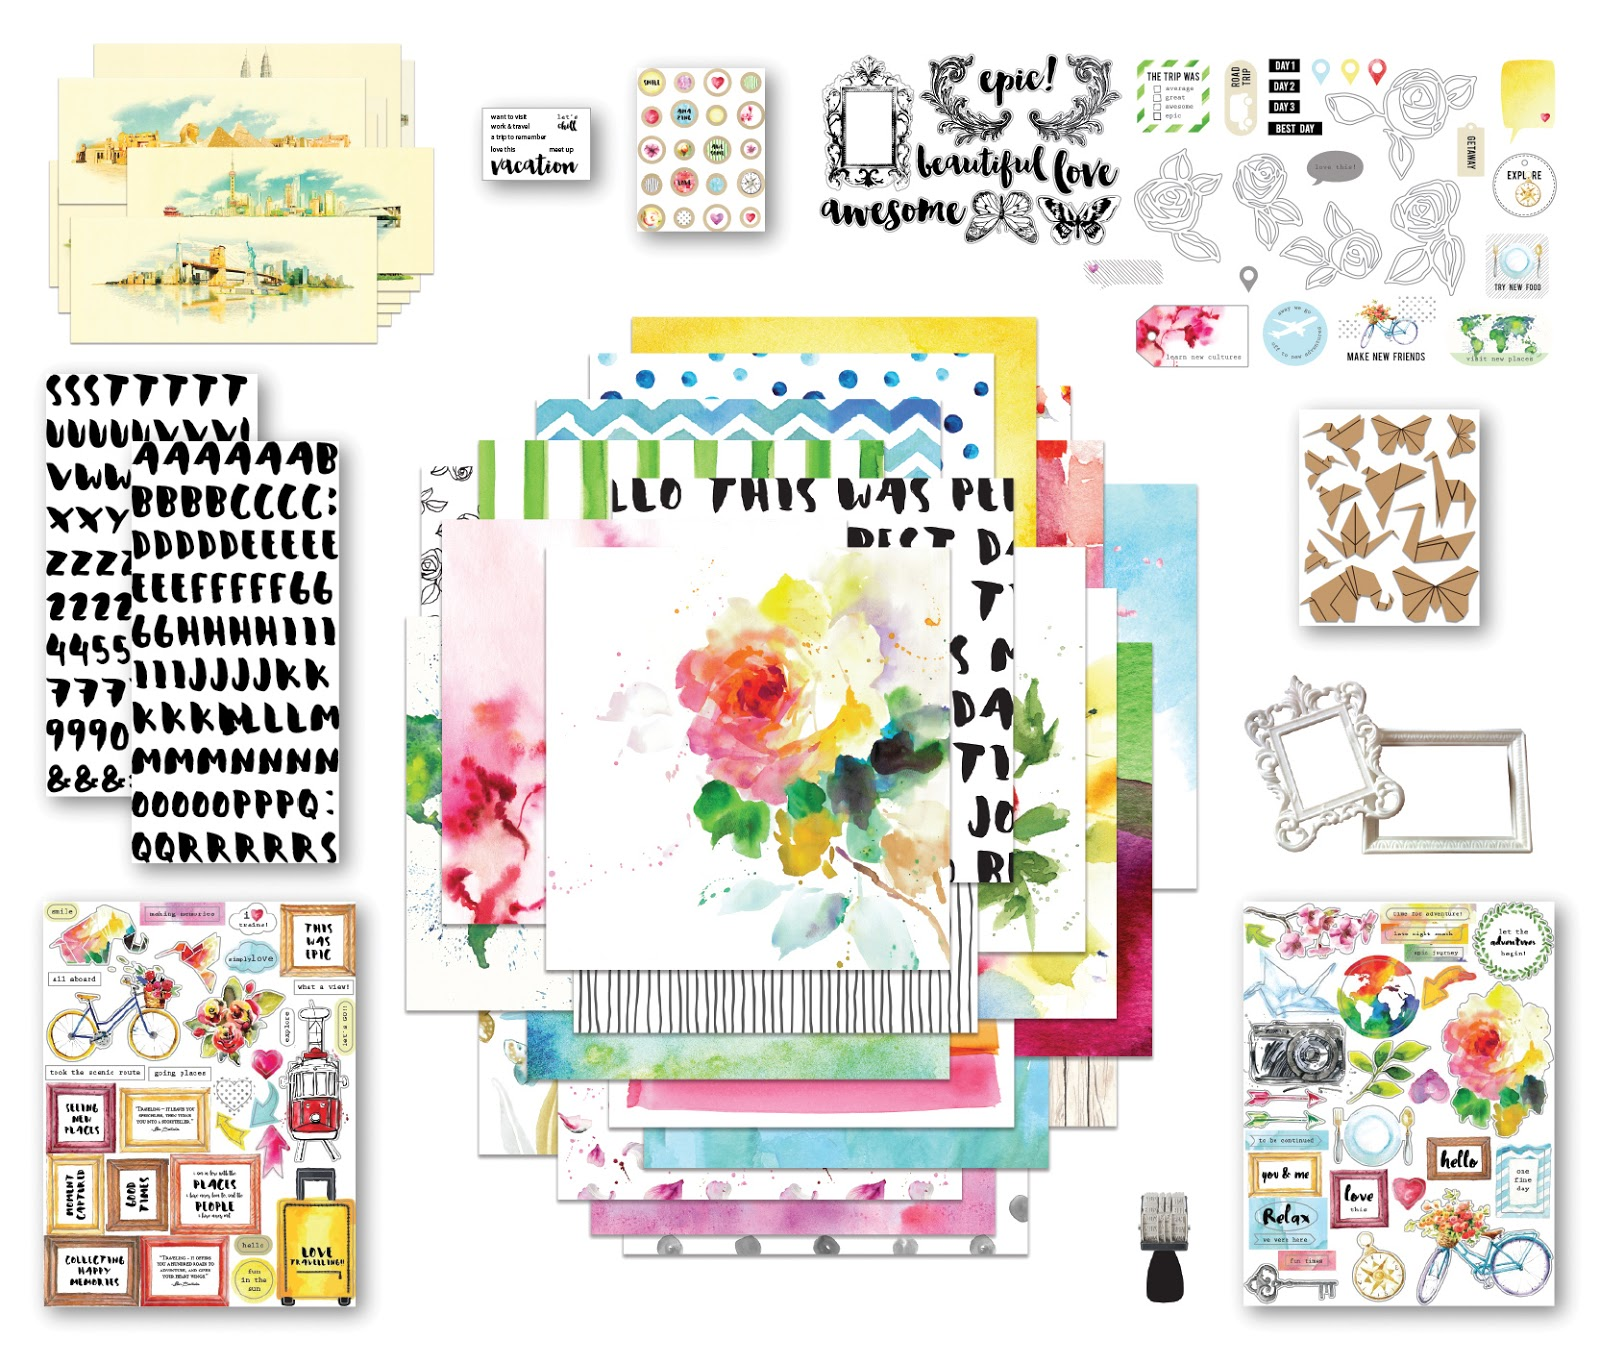 https://altenew.com/products/reflection-scrapbook-kit